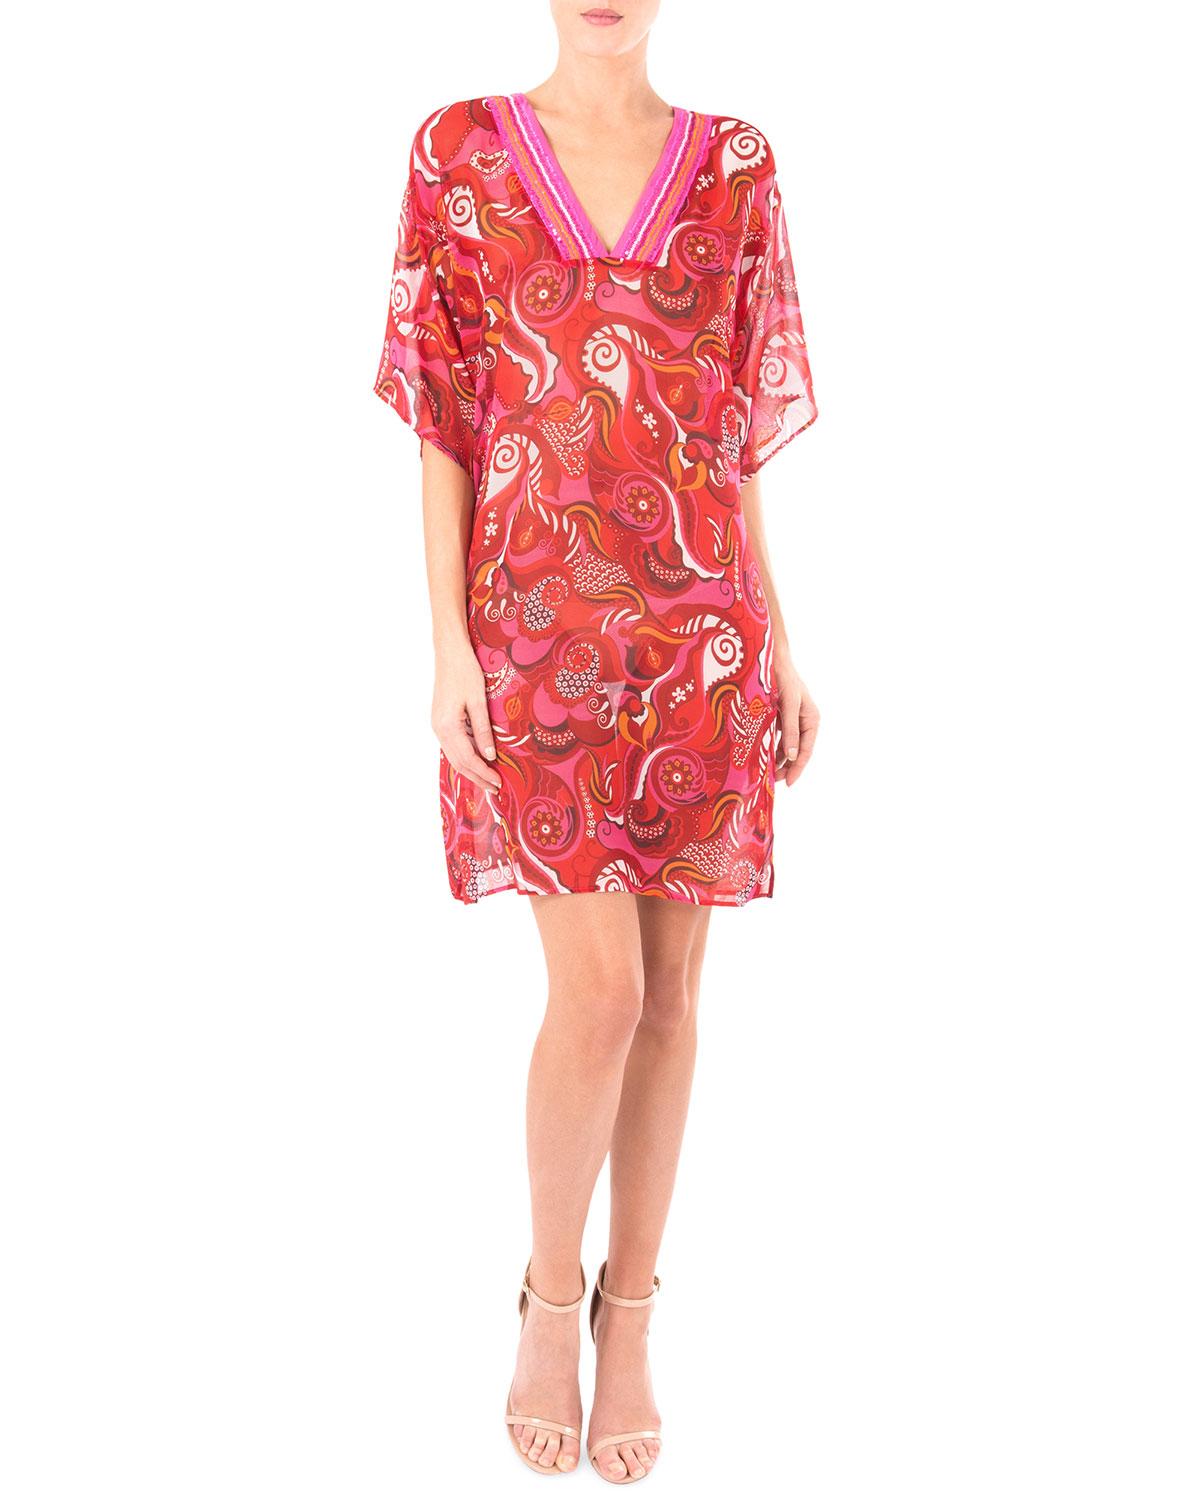 LISE CHARMEL Coraux Merveille Printed V-Neck Tunic in Coraux Solaire